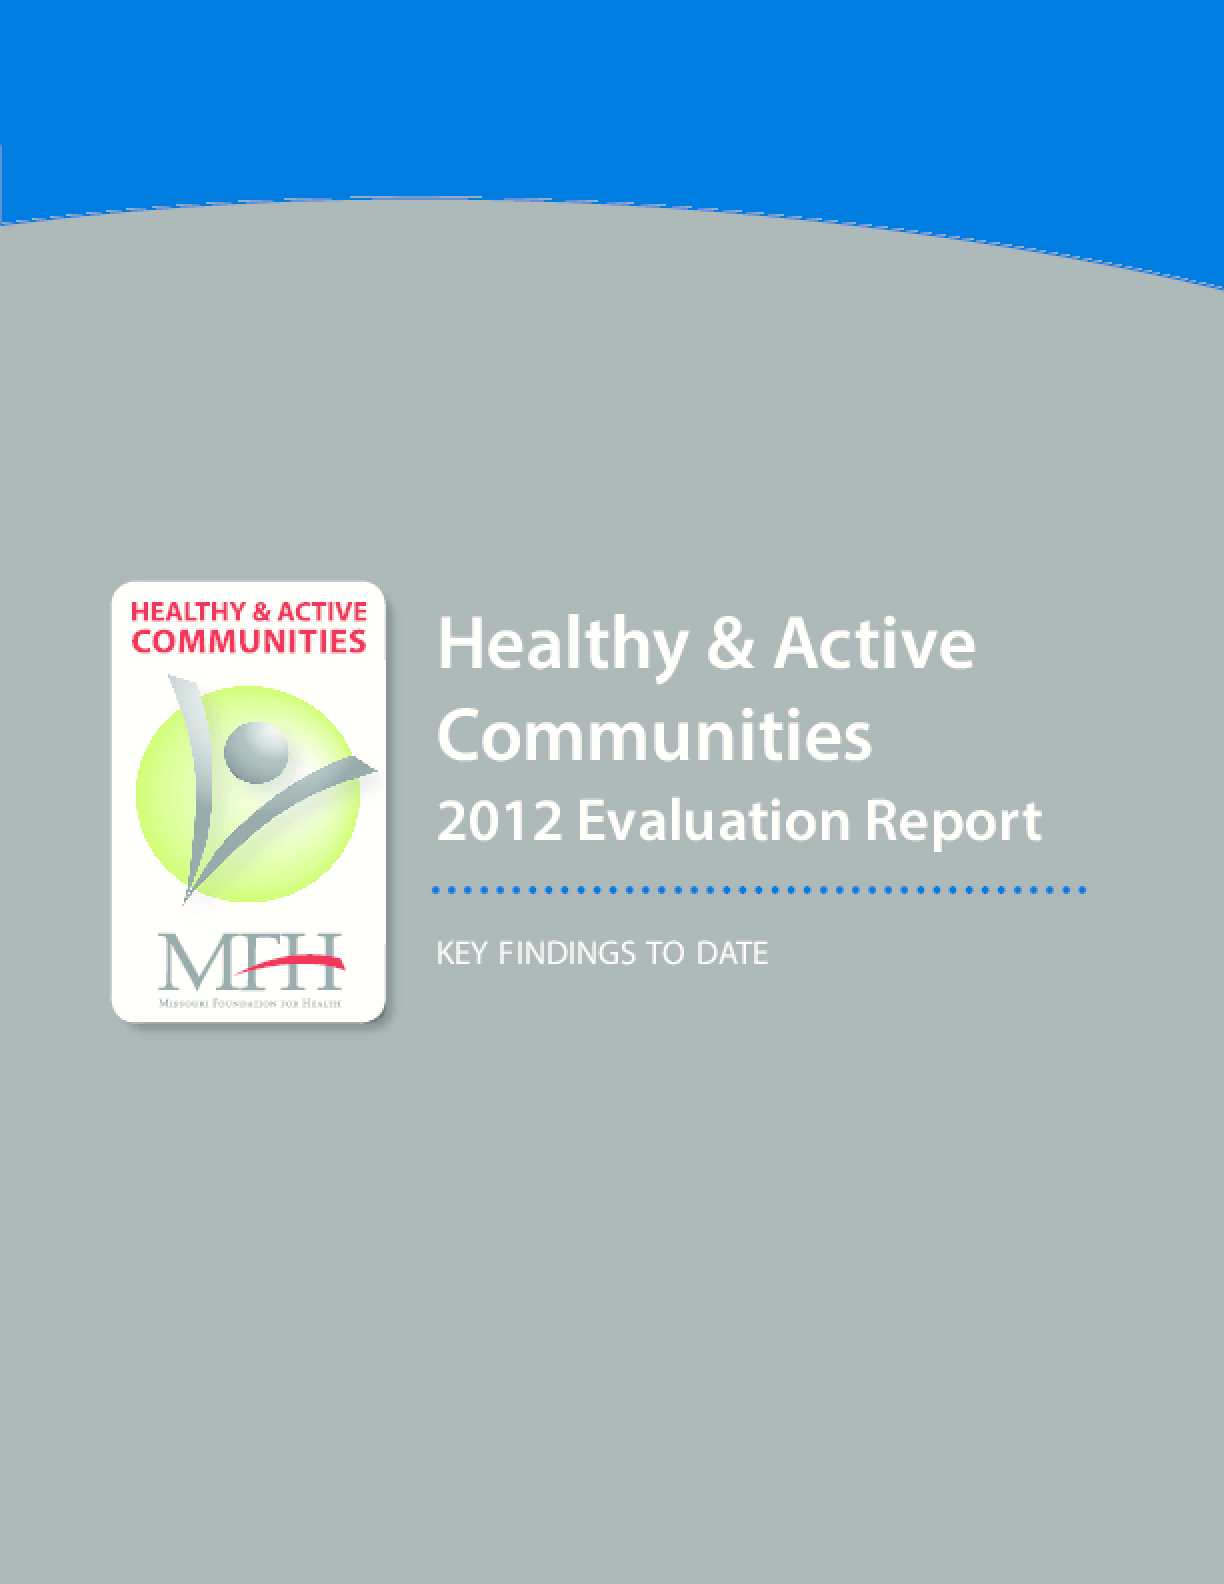 Healthy & Active Communities: 2012 Evaluation Report